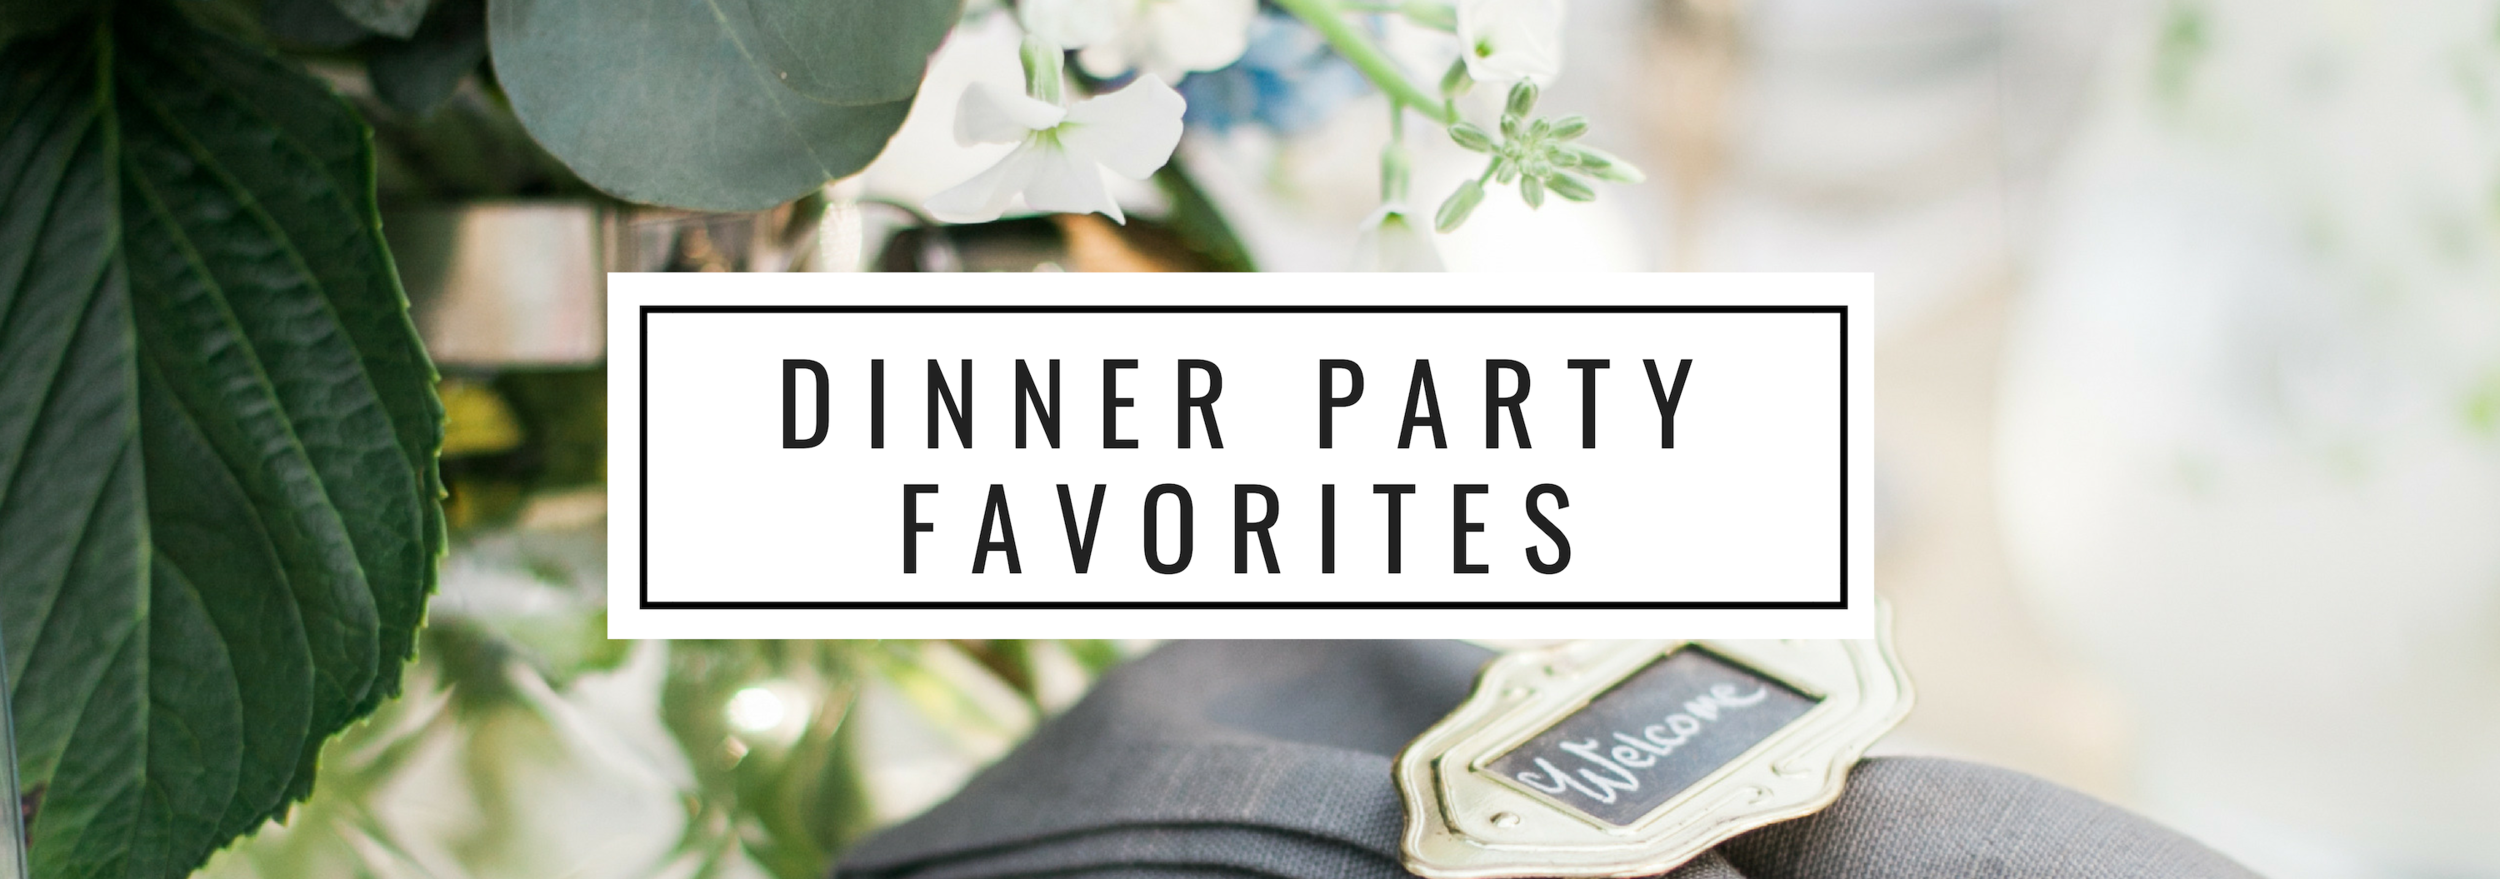 Dinner Party Favorites.png